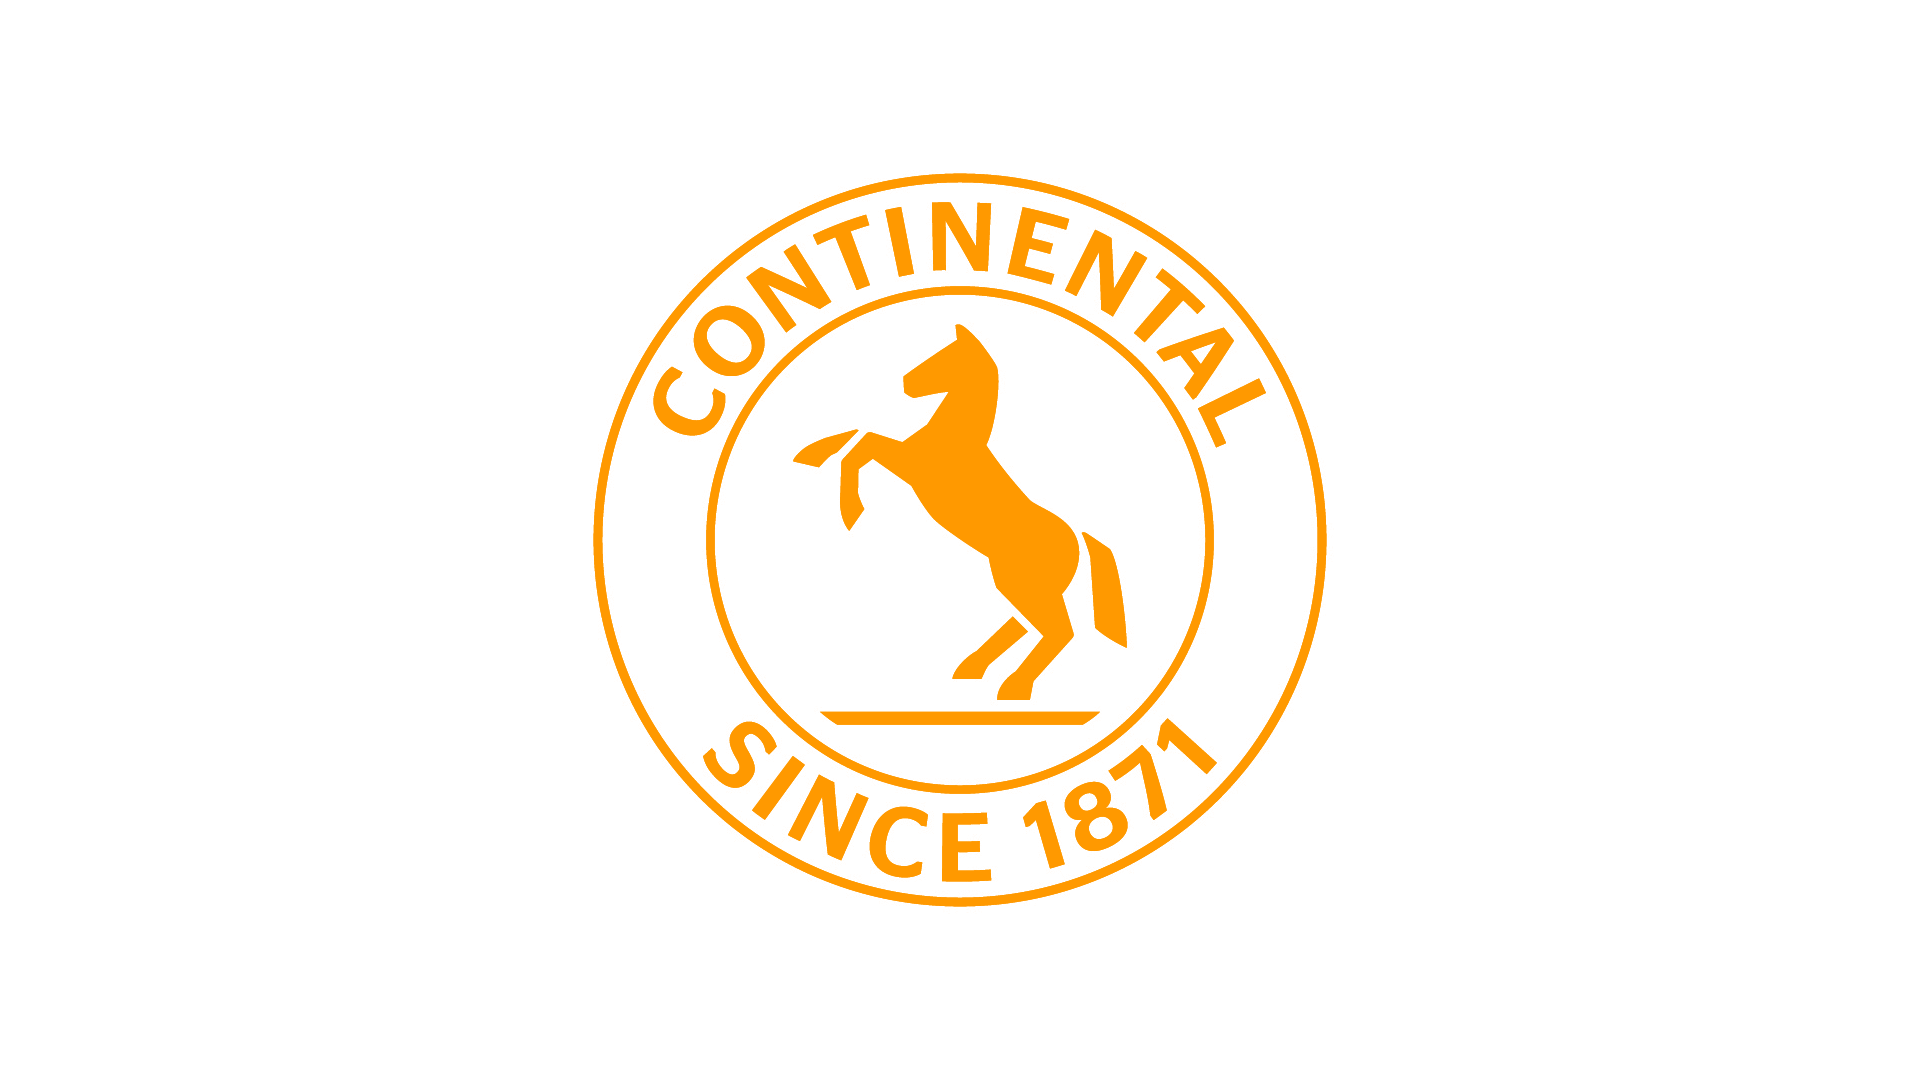 1920X1080 Hd Png - Continental, Transparent background PNG HD thumbnail